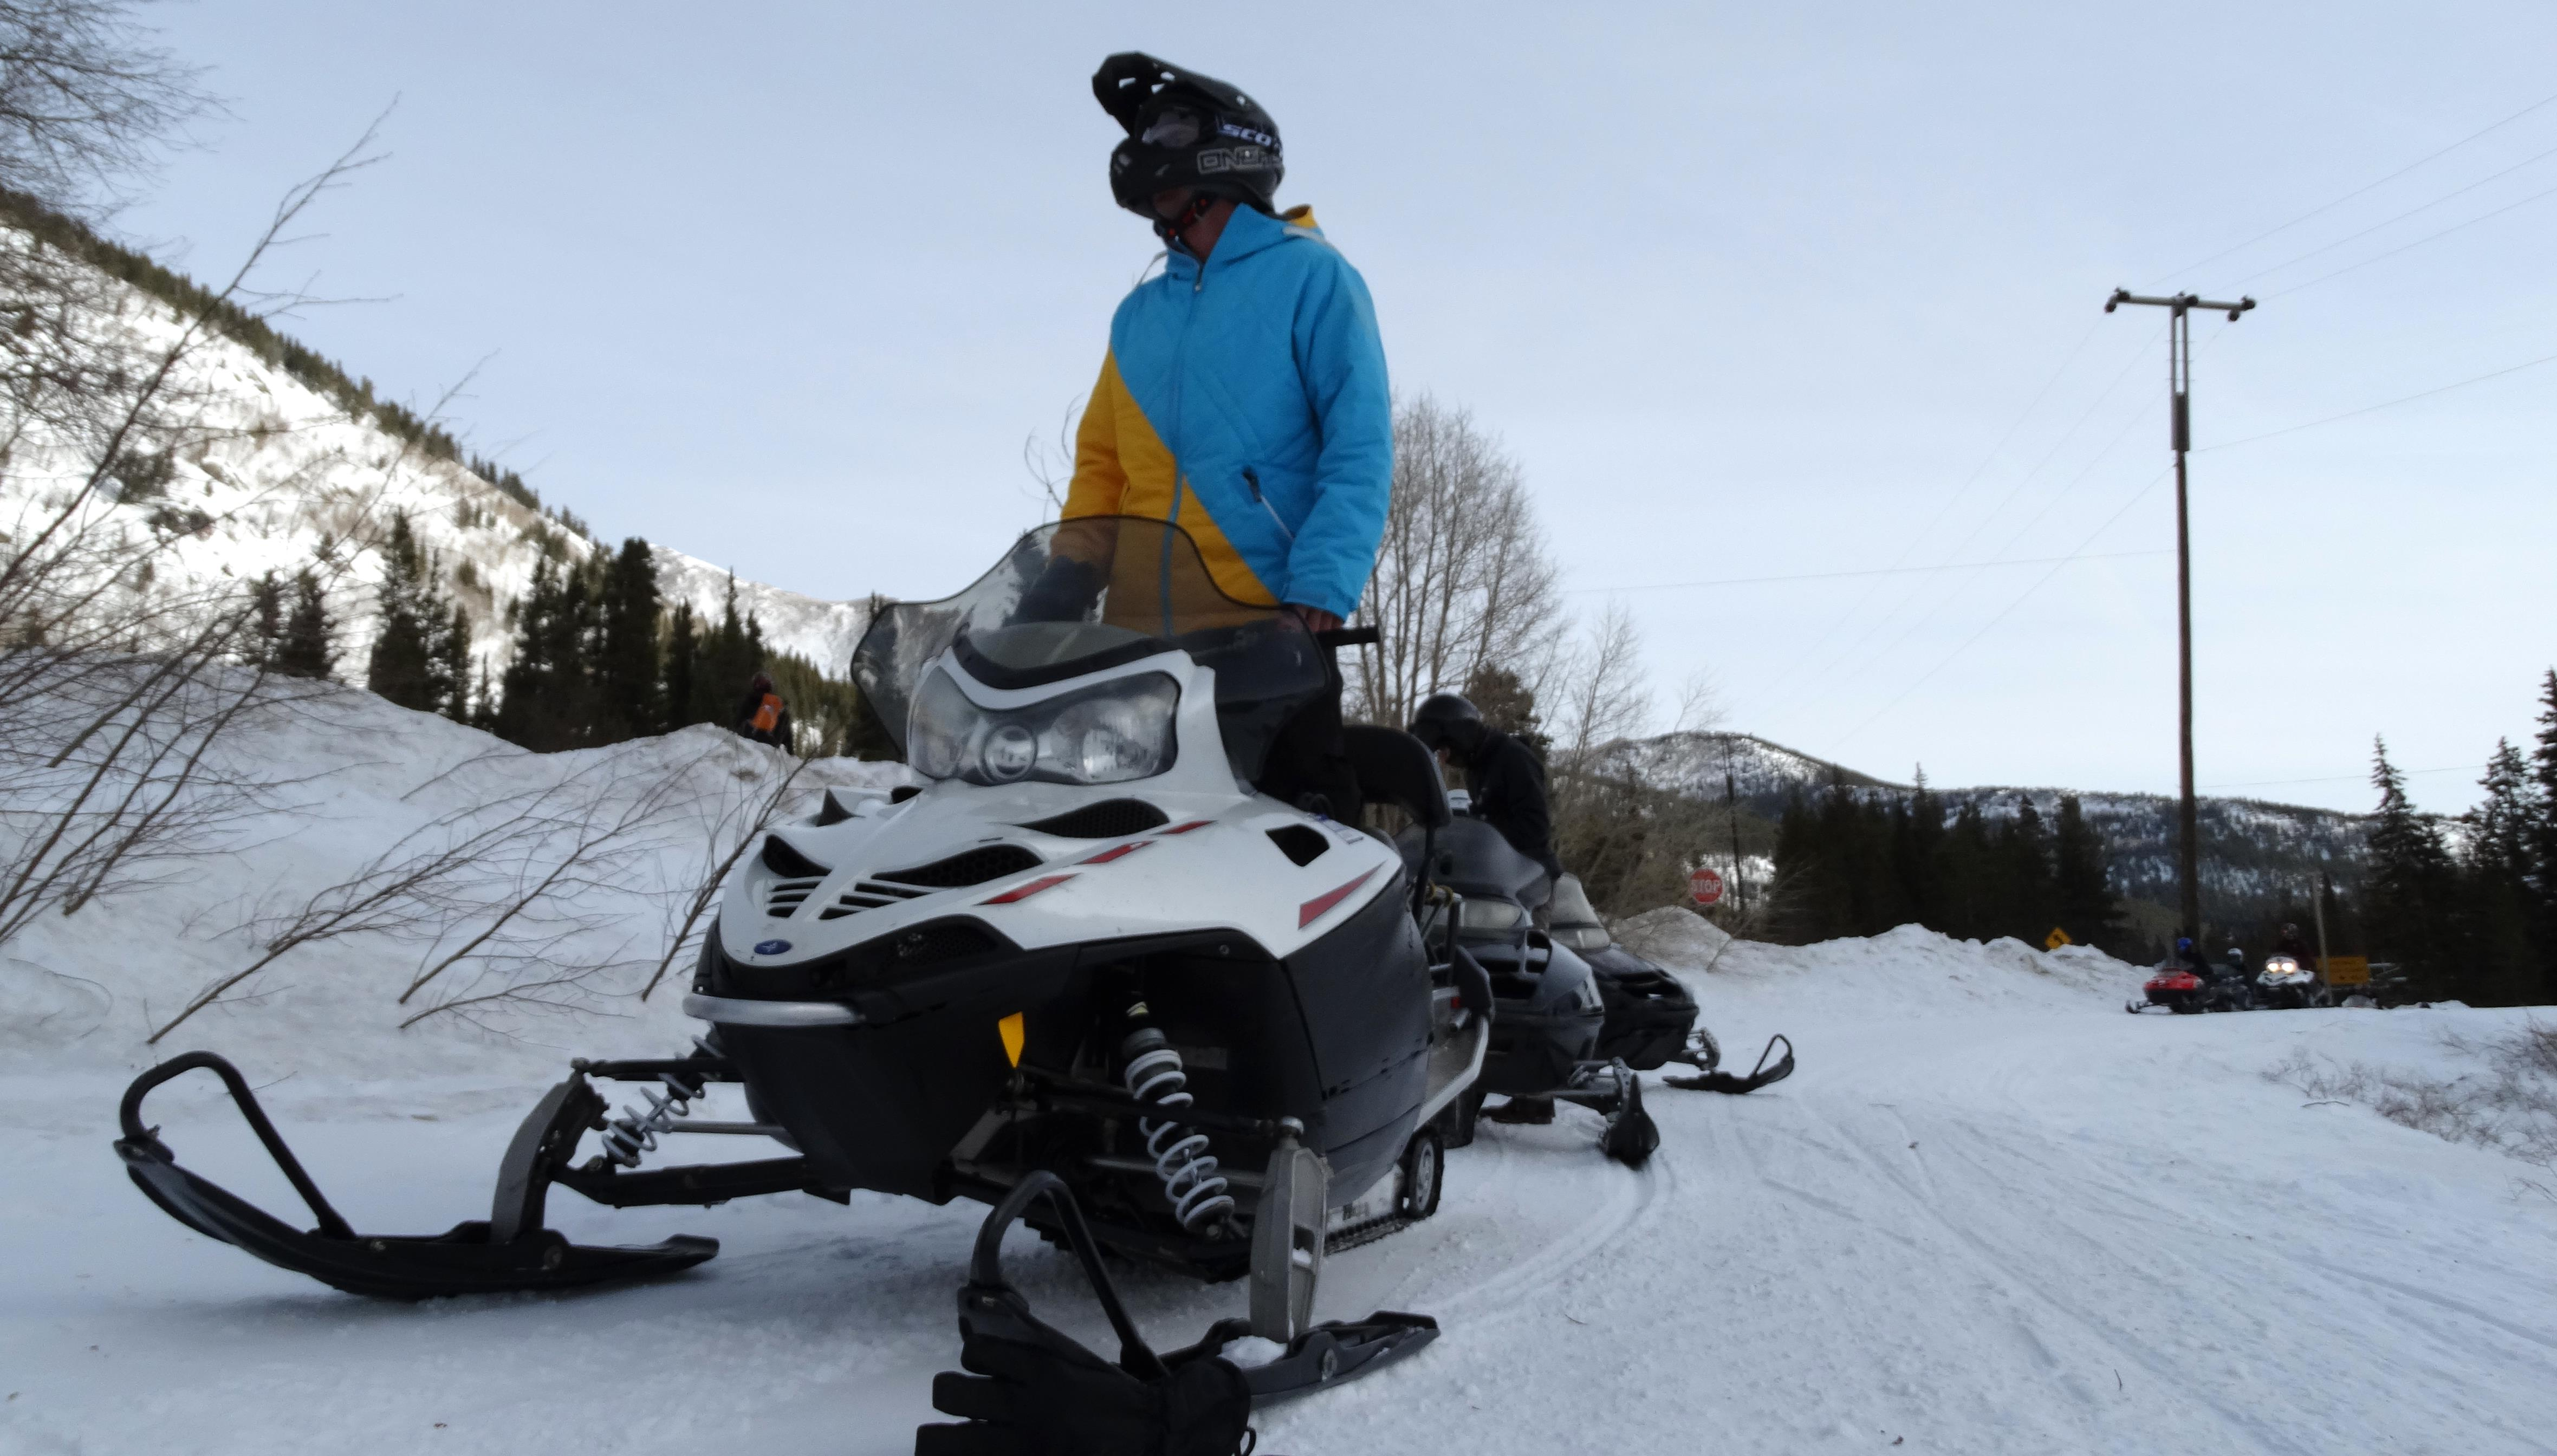 Best Snowmobiling Boots Benefits of The Best Snowmobile Boots